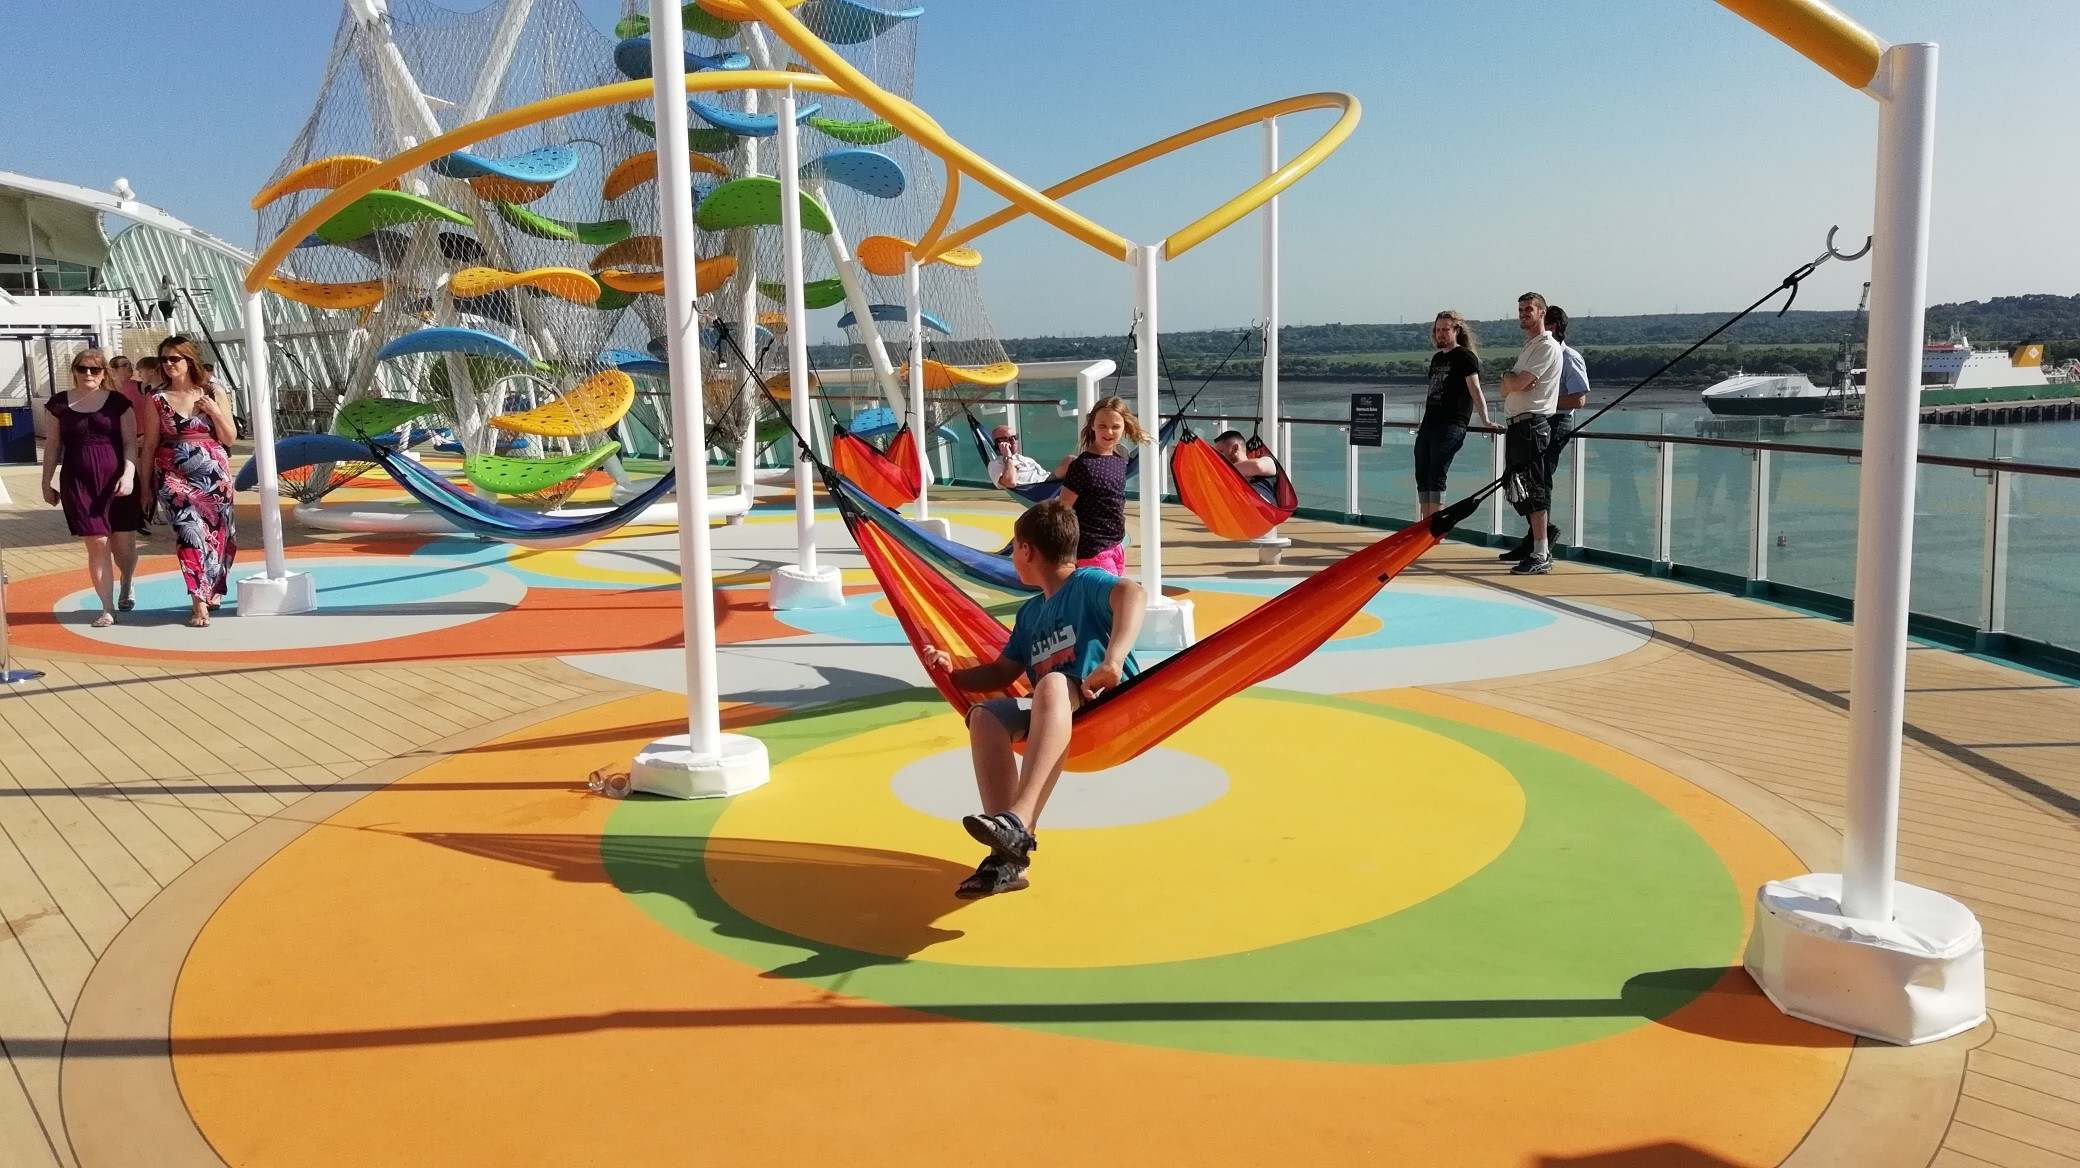 Sky Pad and The Perfect Storm on Independence of the Seas - Royal Caribbean (13)